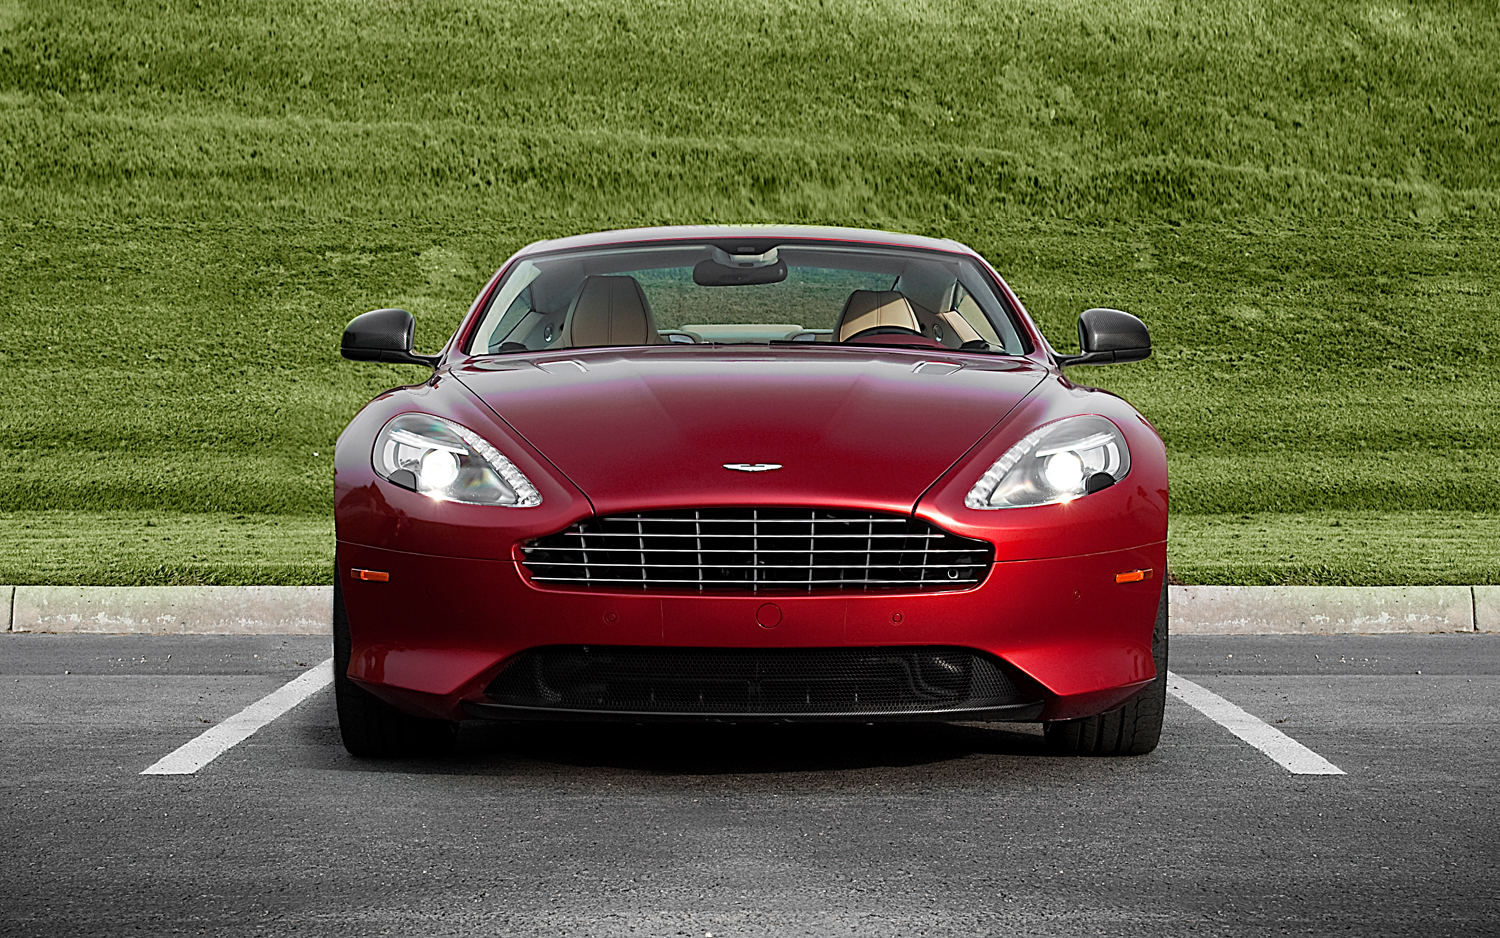 latest cars models 2013 aston martin db9. Cars Review. Best American Auto & Cars Review